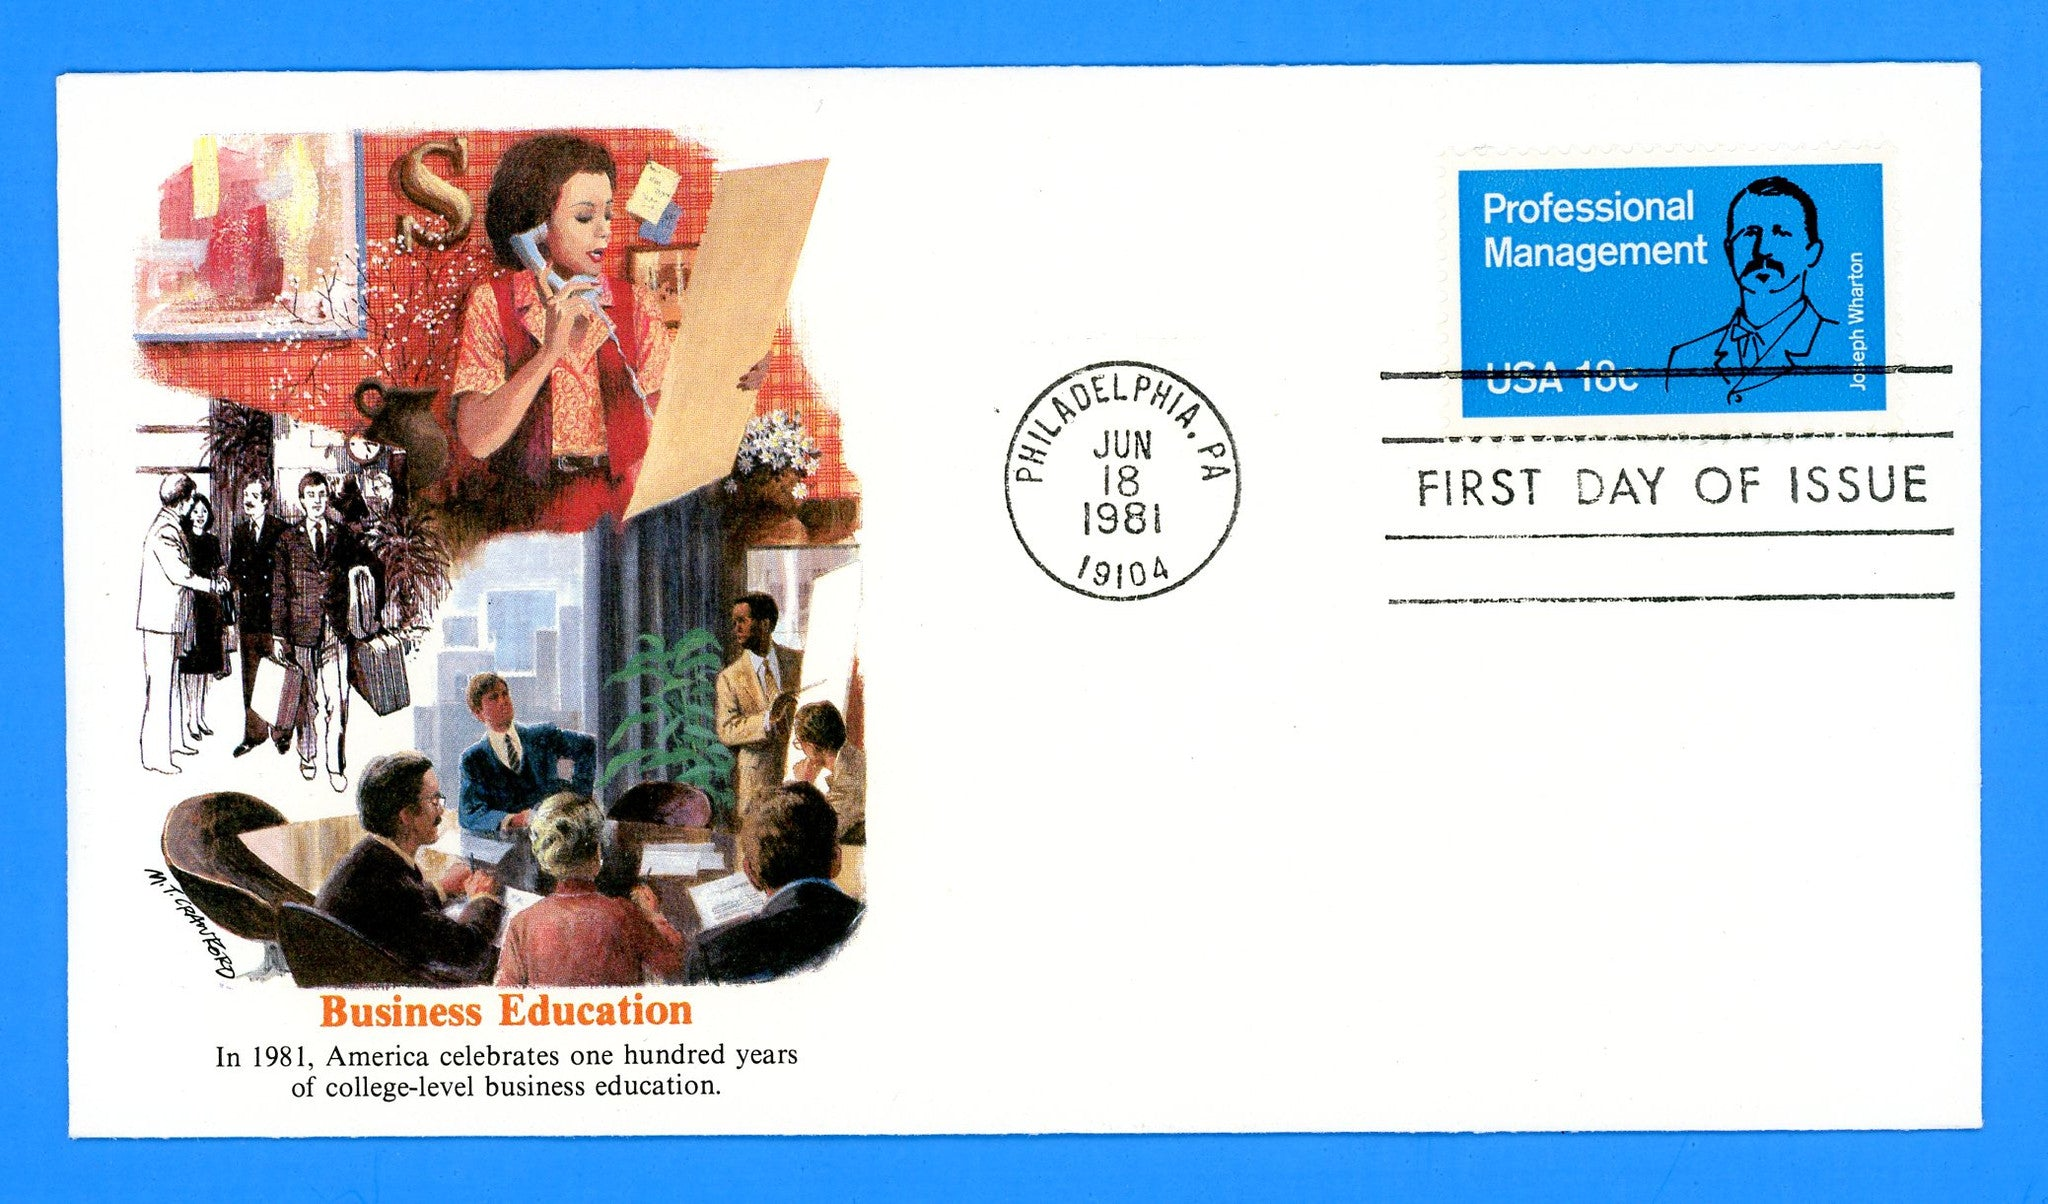 Professional Management First Day Cover by Fleetwood